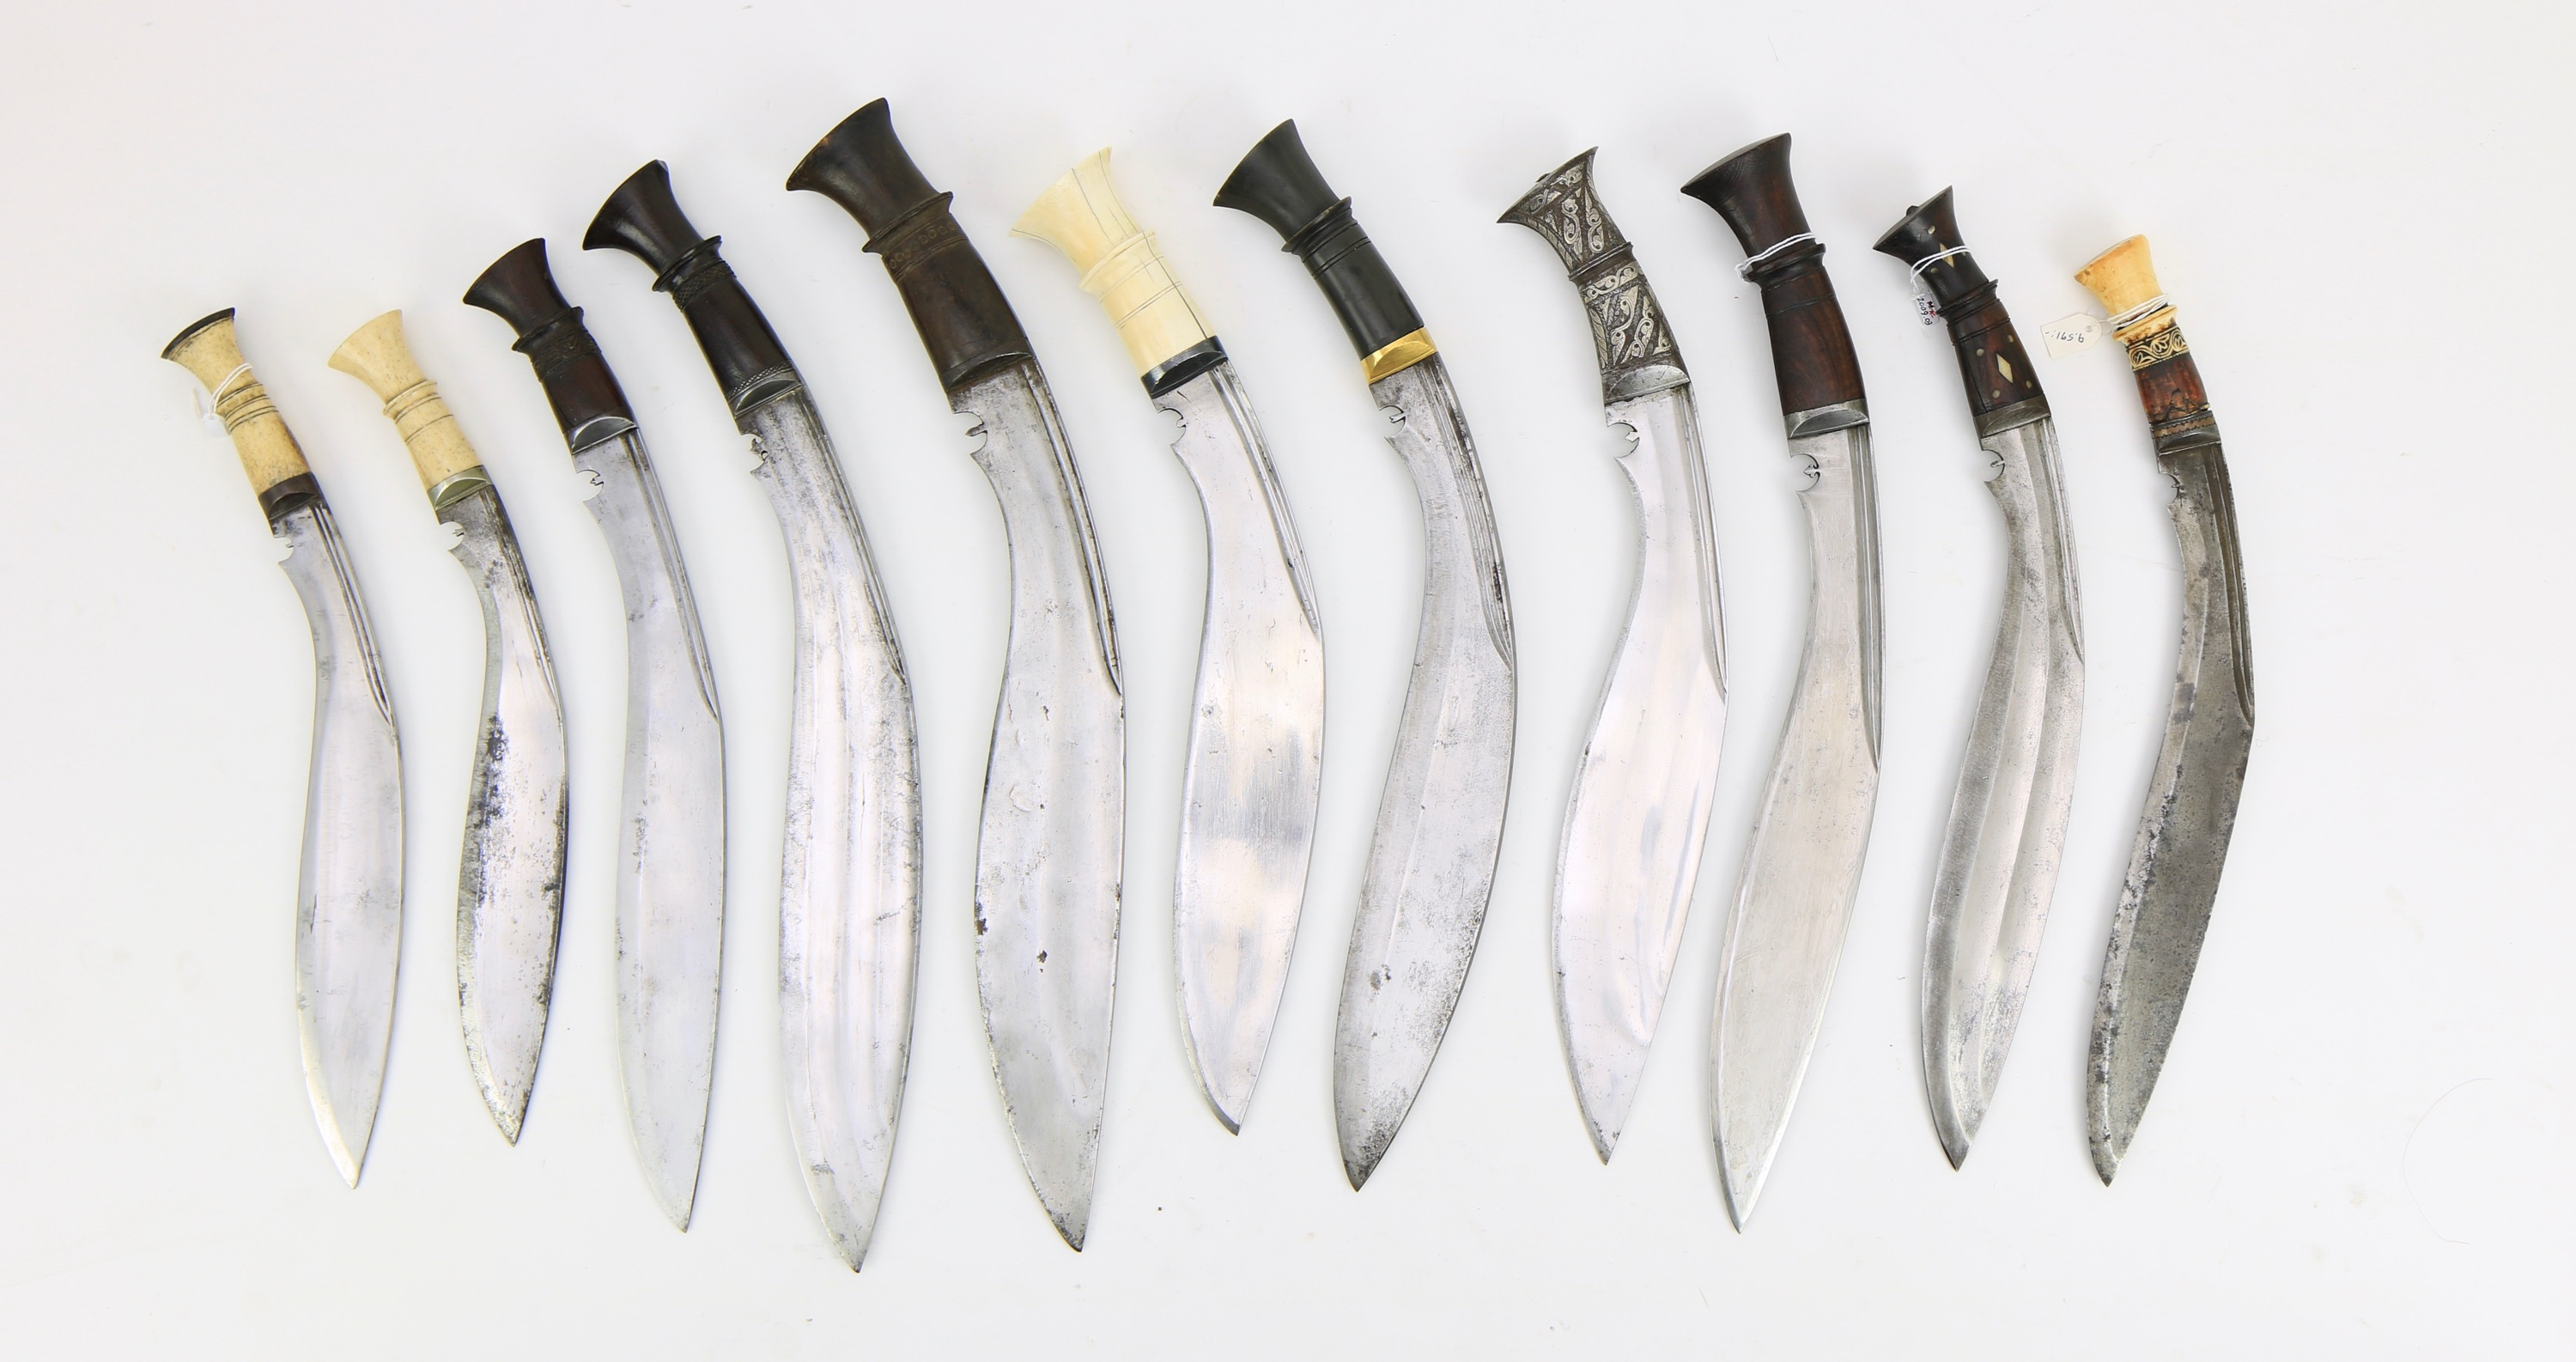 Group of khukuri